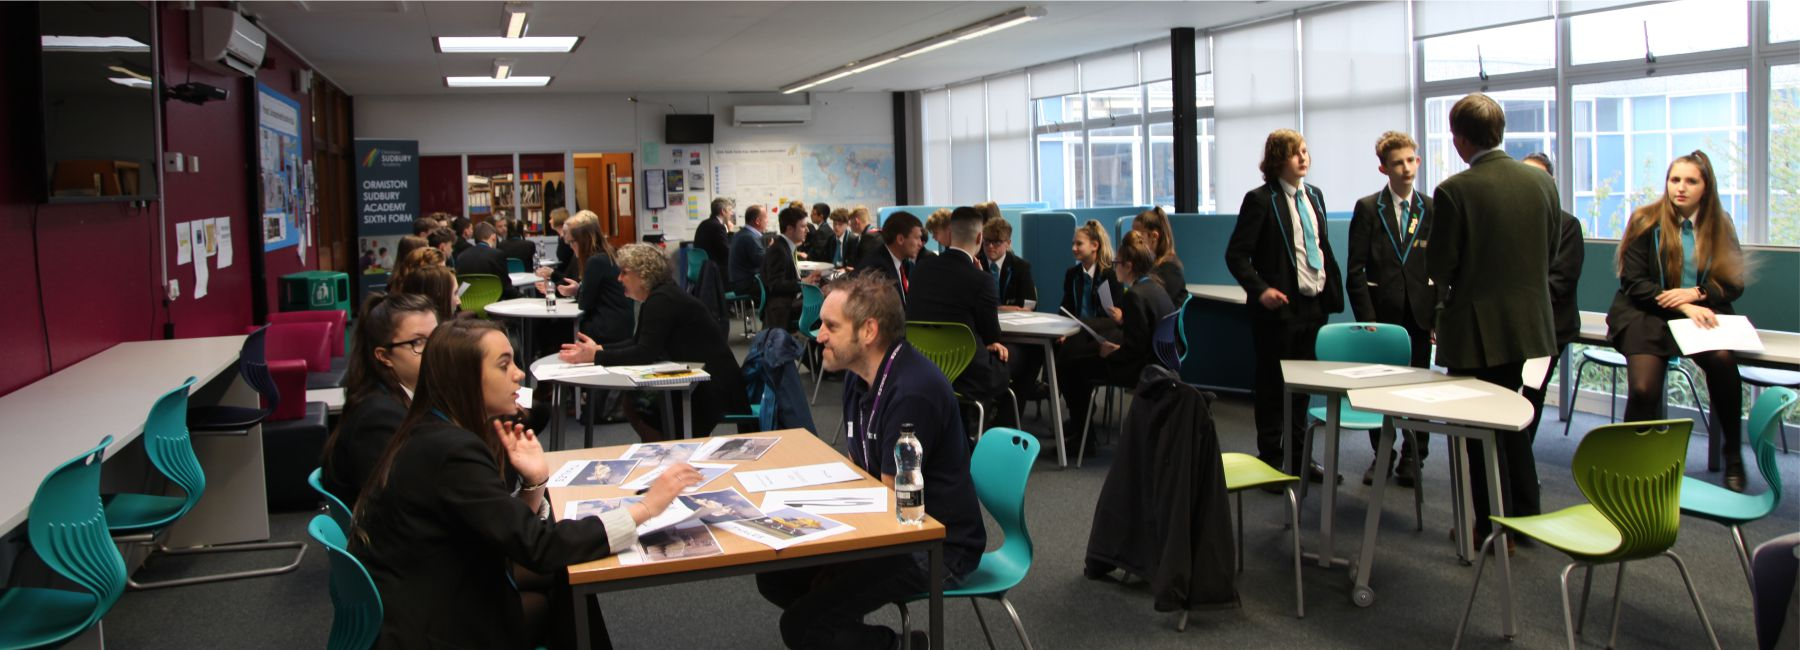 Ormiston Academy Networking Event